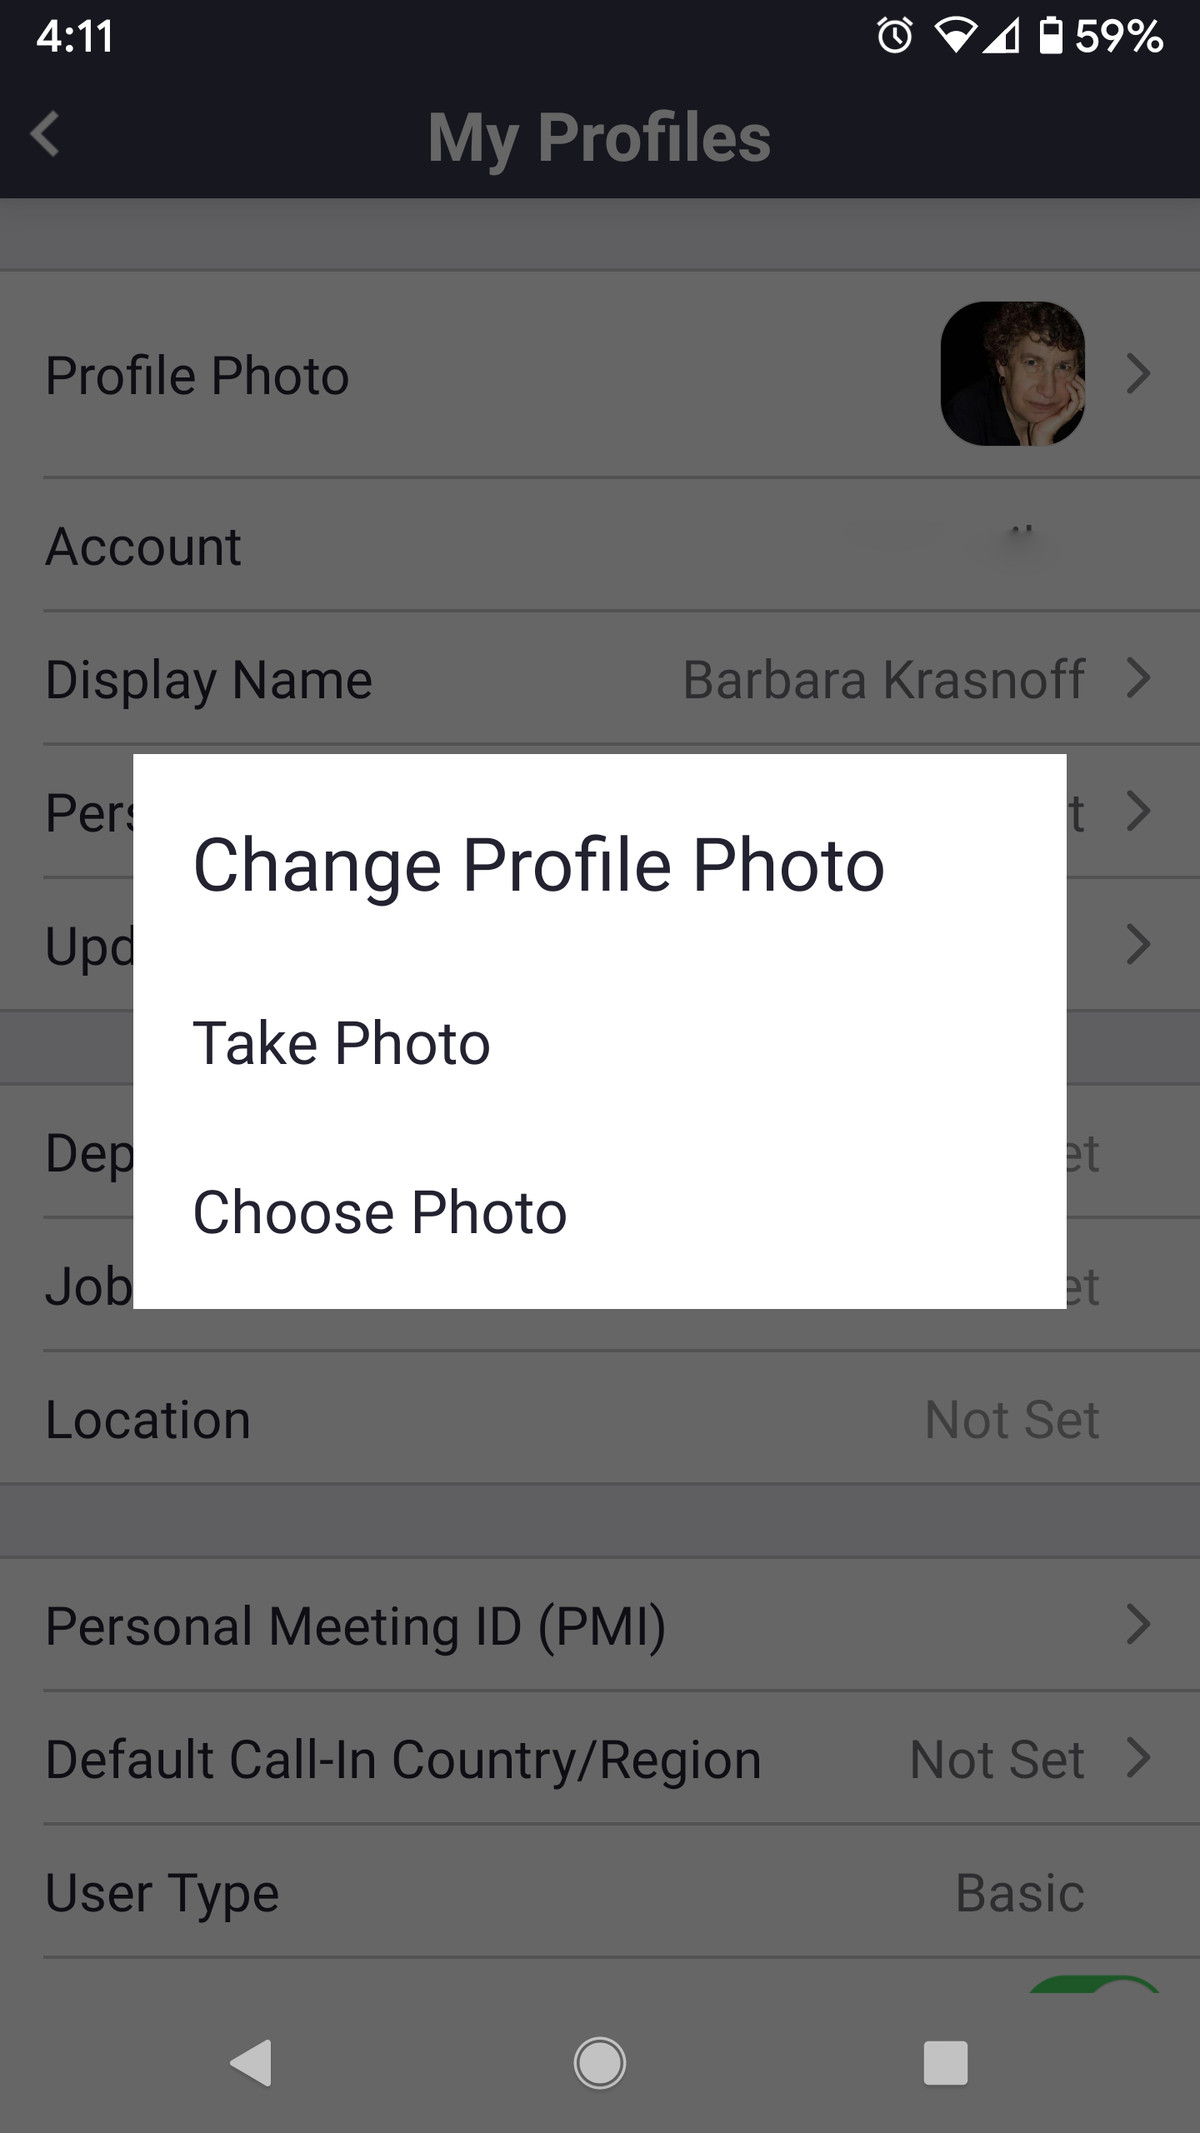 You can also change your profile photo in the pop-up window.